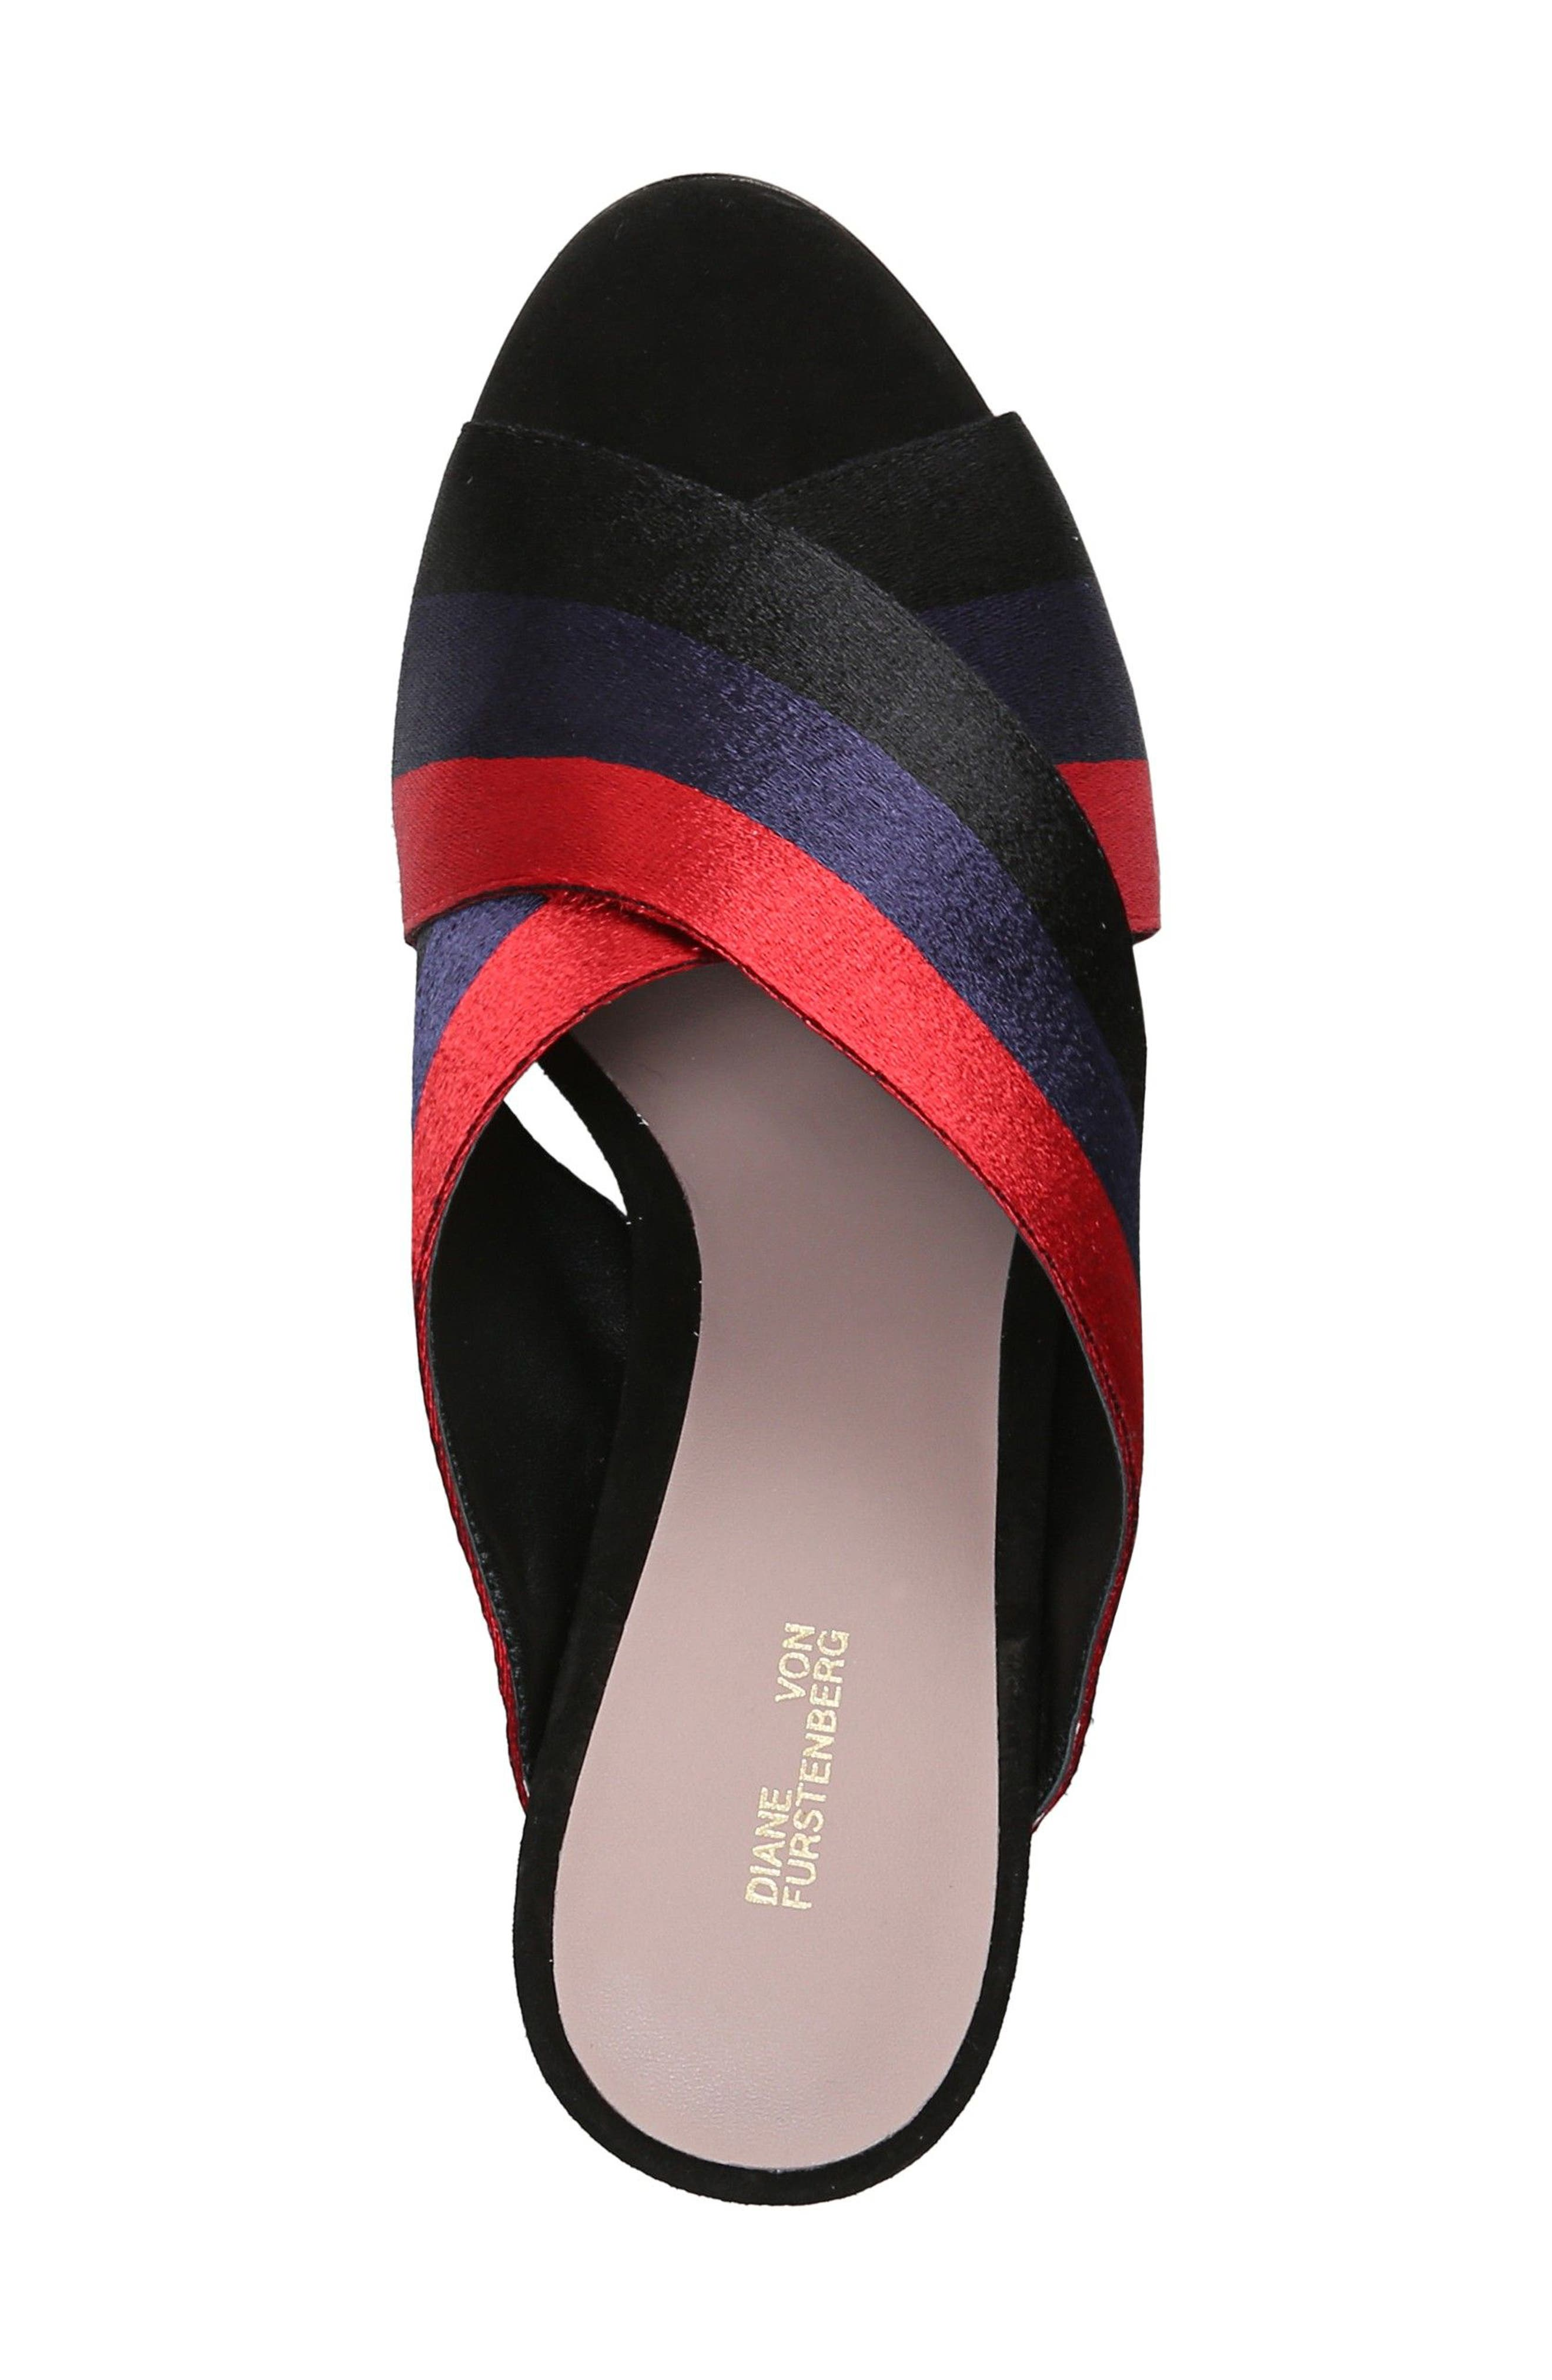 Emilyn Sandal,                             Alternate thumbnail 5, color,                             Navy/ Lipstick